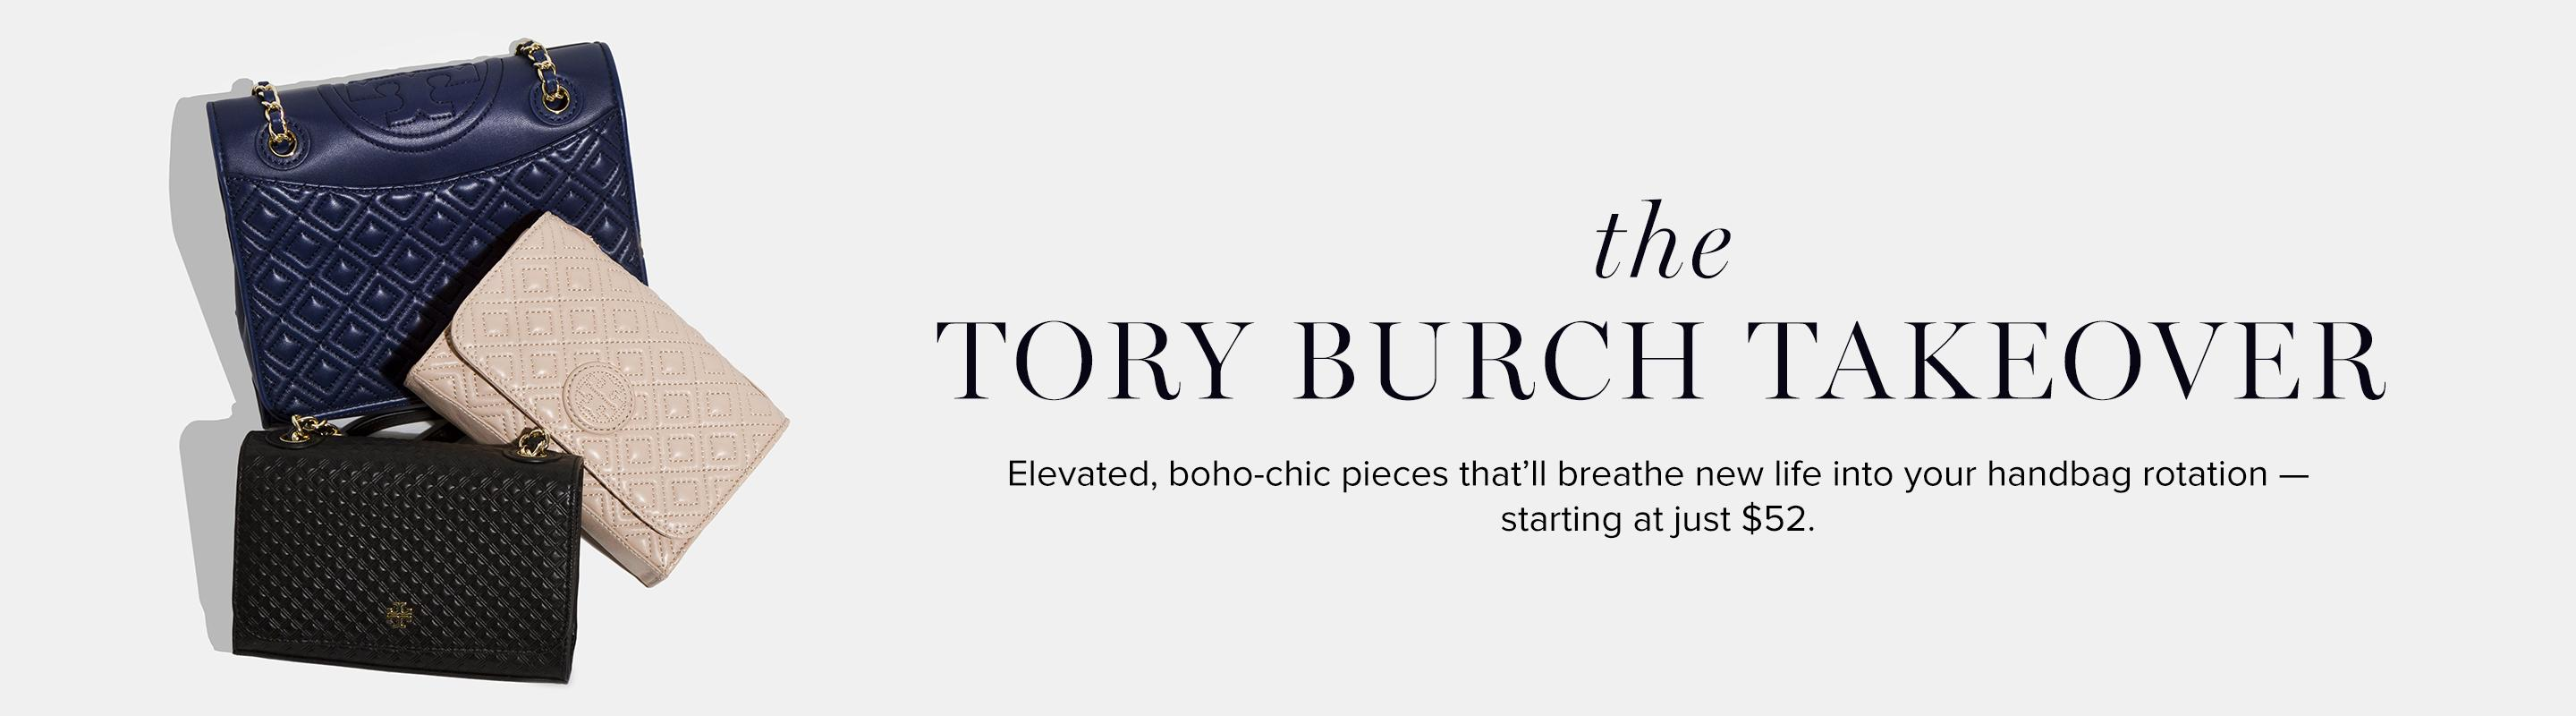 Tory Burch Takeover